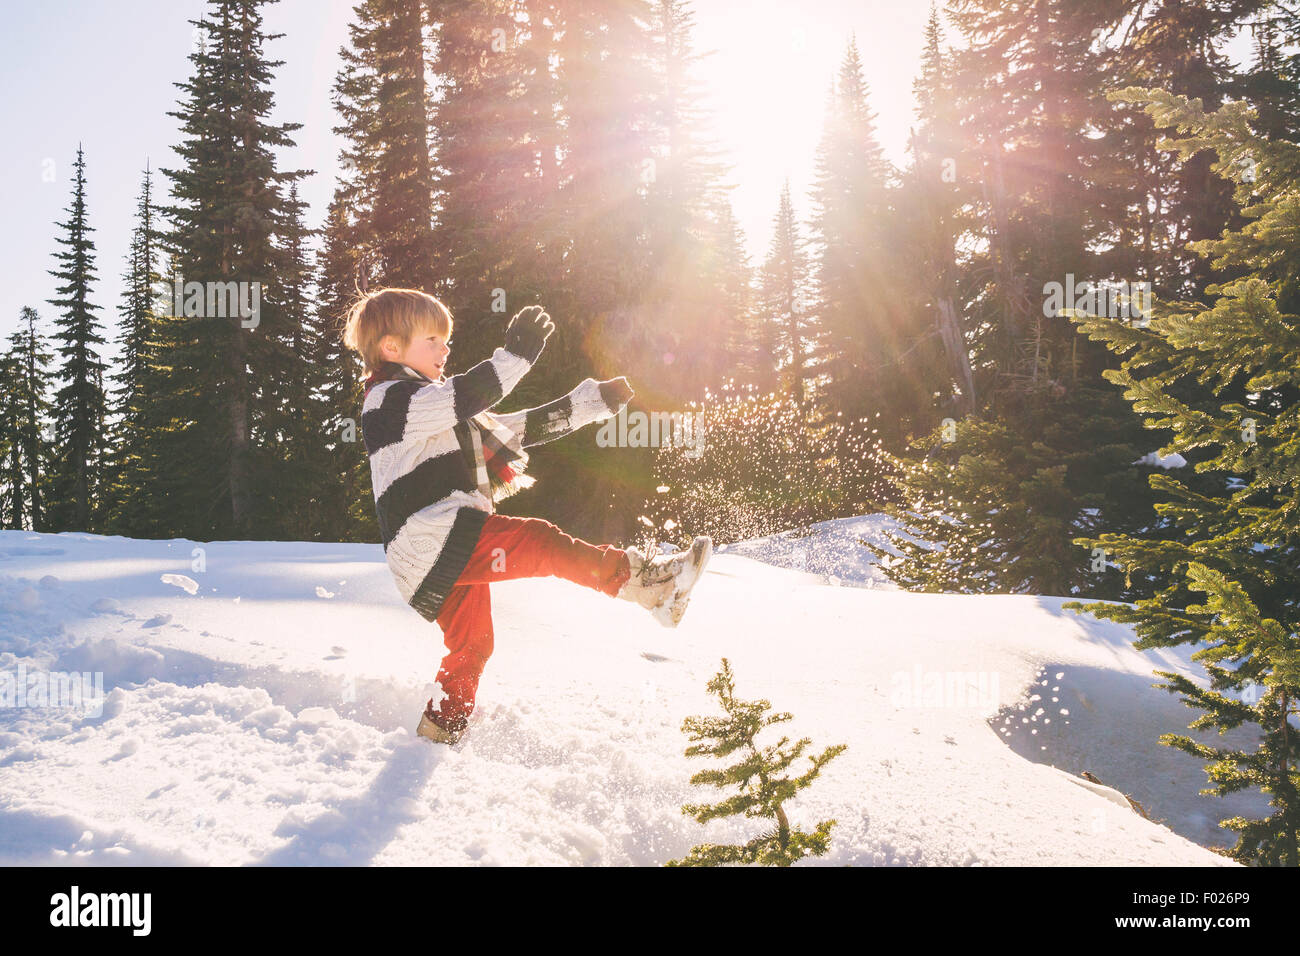 Boy kicking snow in the air - Stock Image